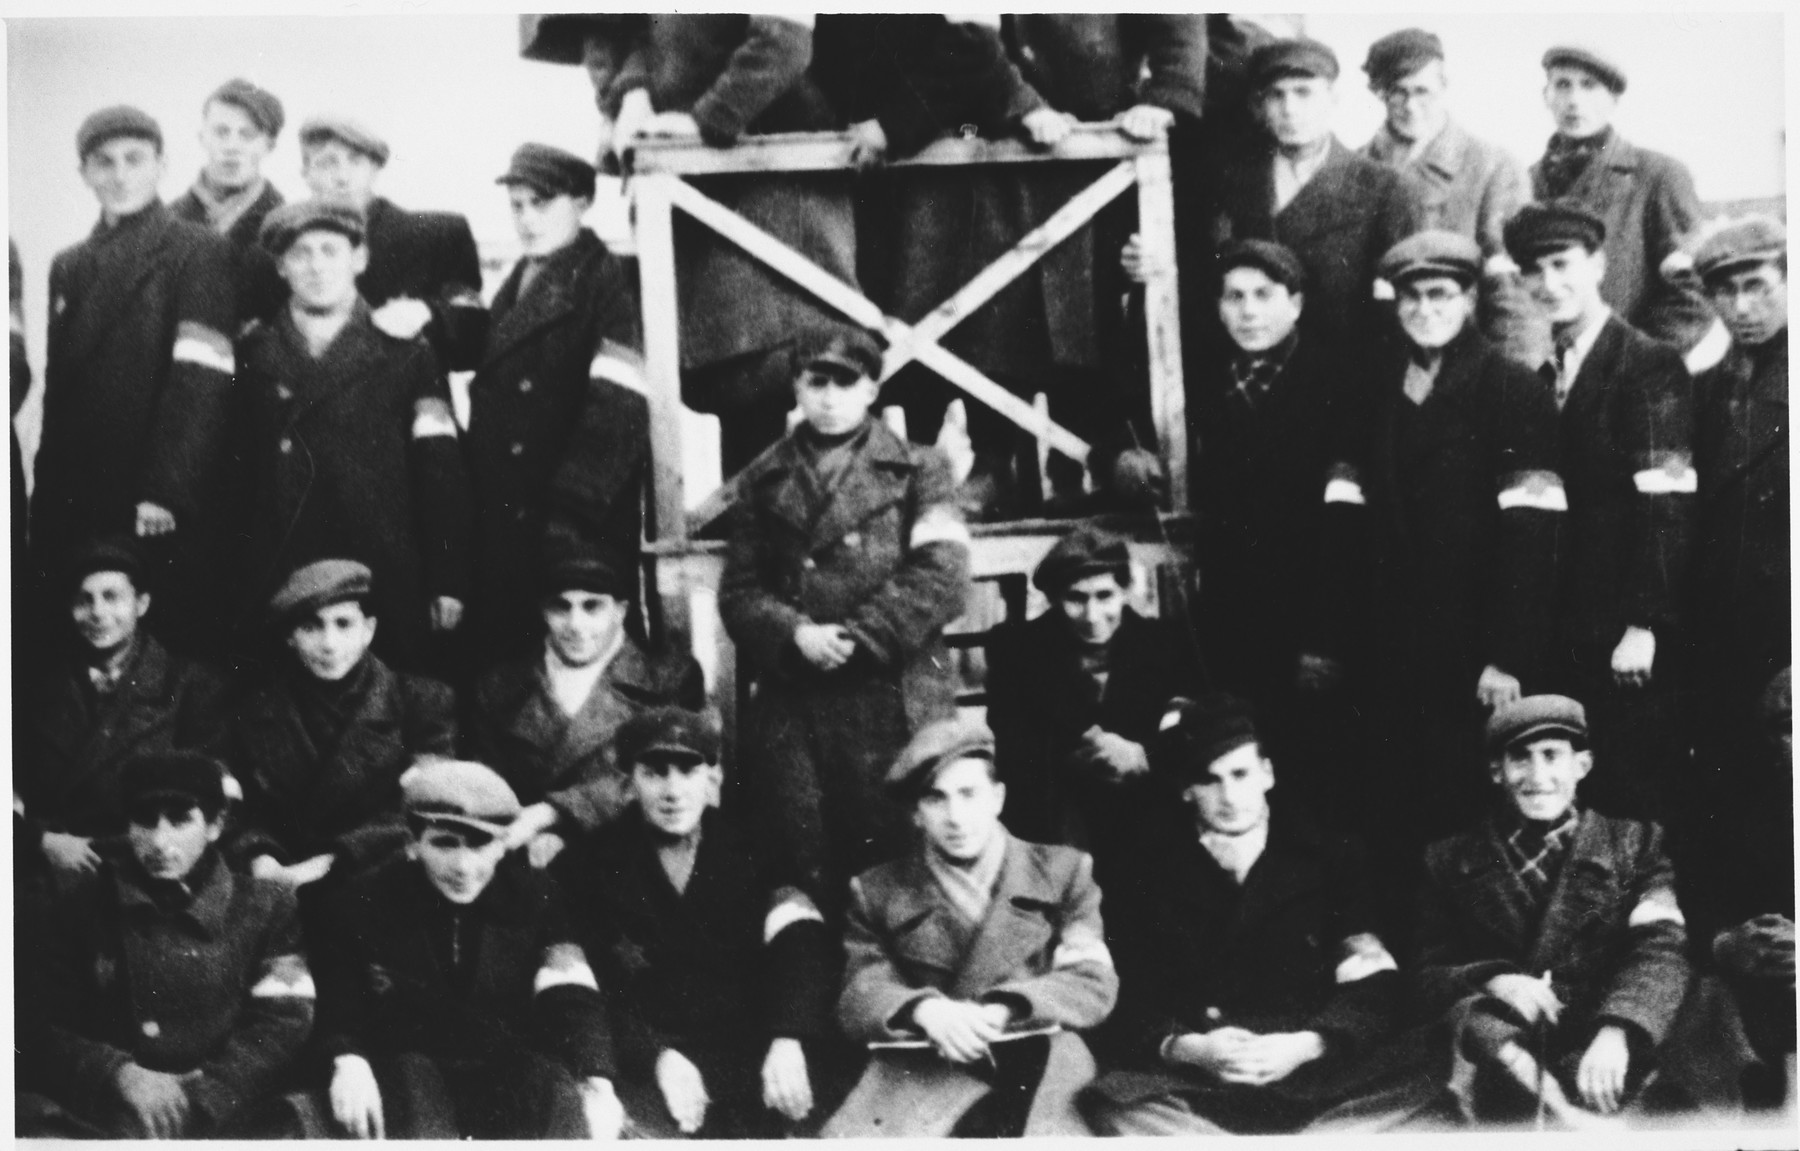 Group portrait of Jewish firefighters or police in the Lodz ghetto.